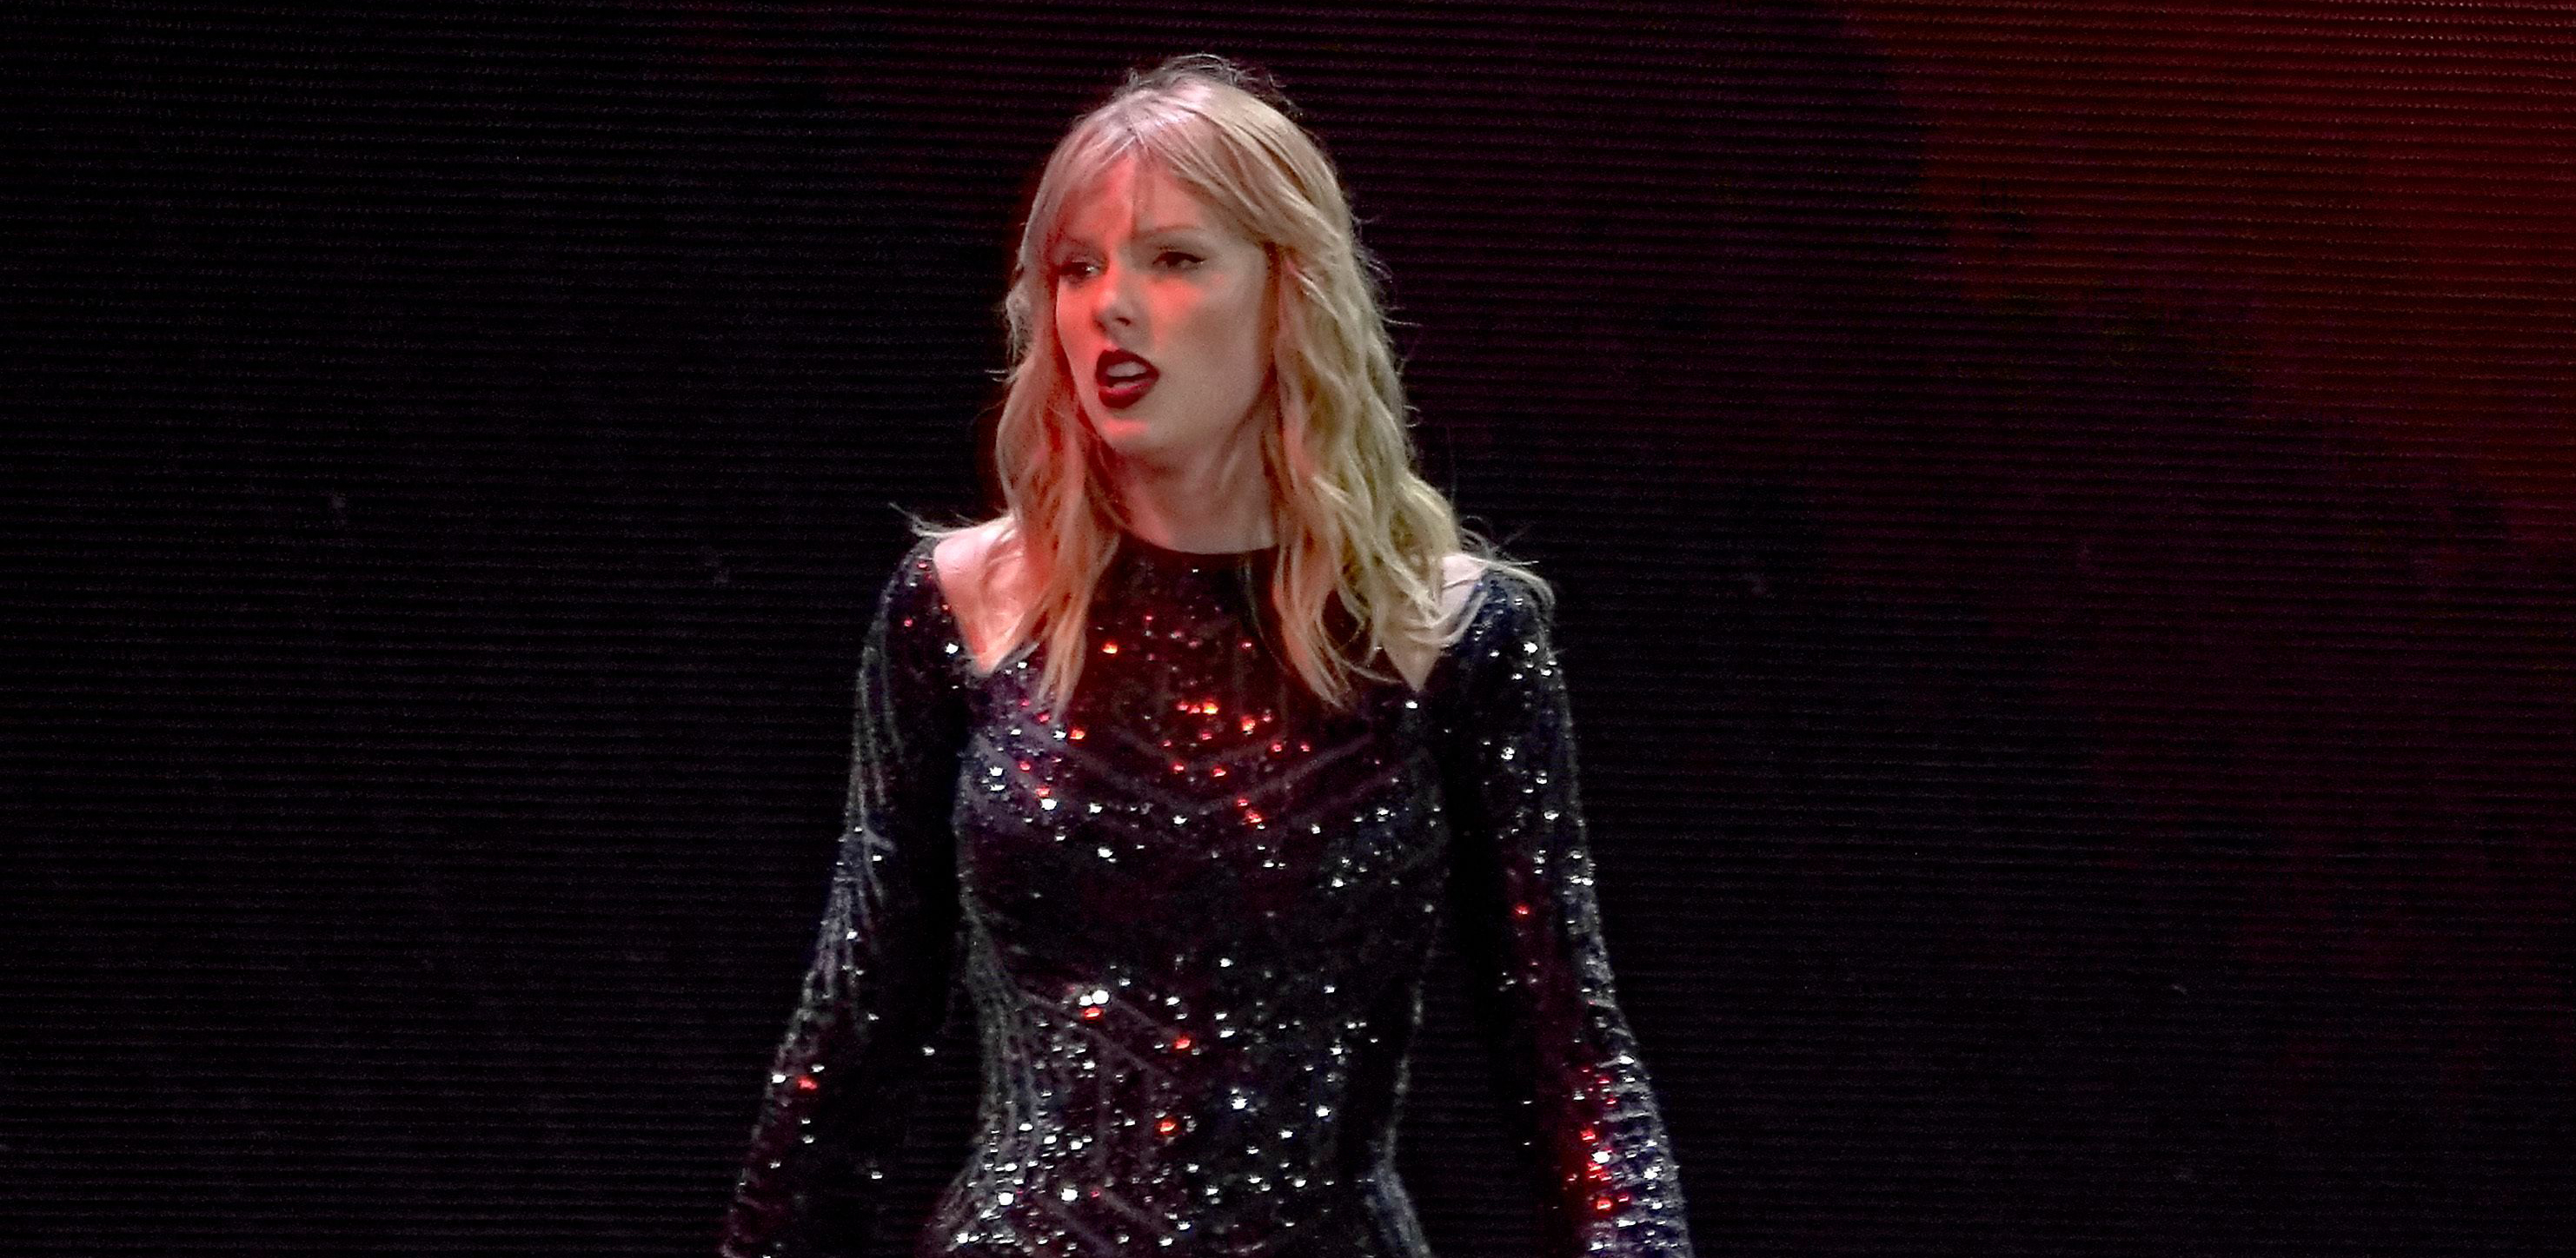 Taylor Swift Breaks Political Silence, Denounces 'Systemic Racism'